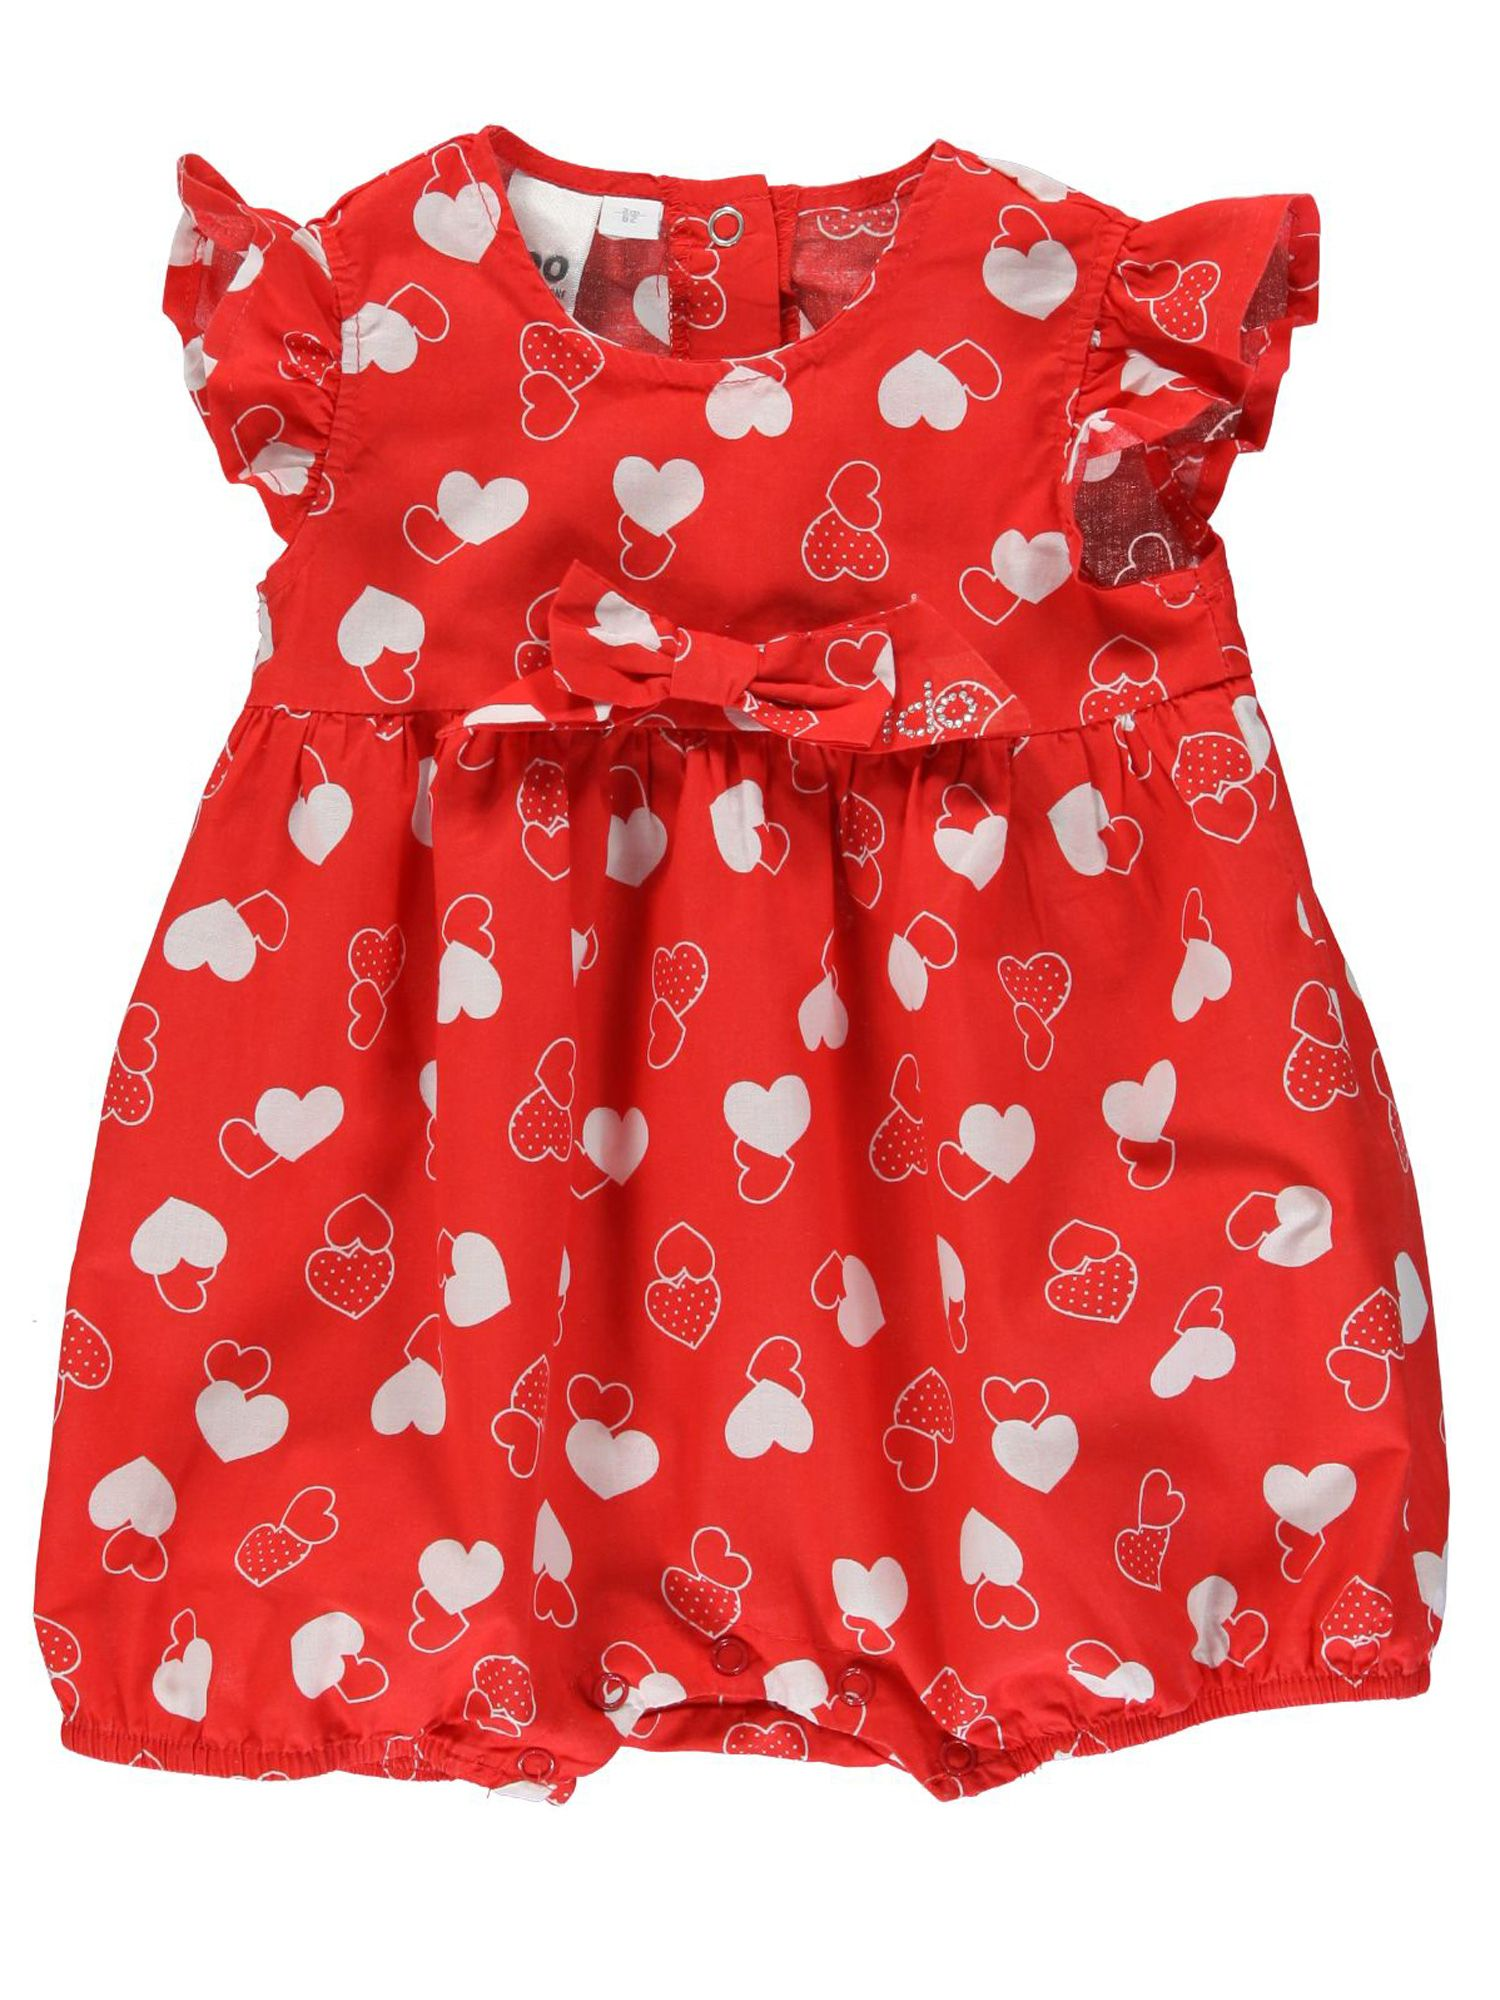 Baby girls red cotton dress with hearts